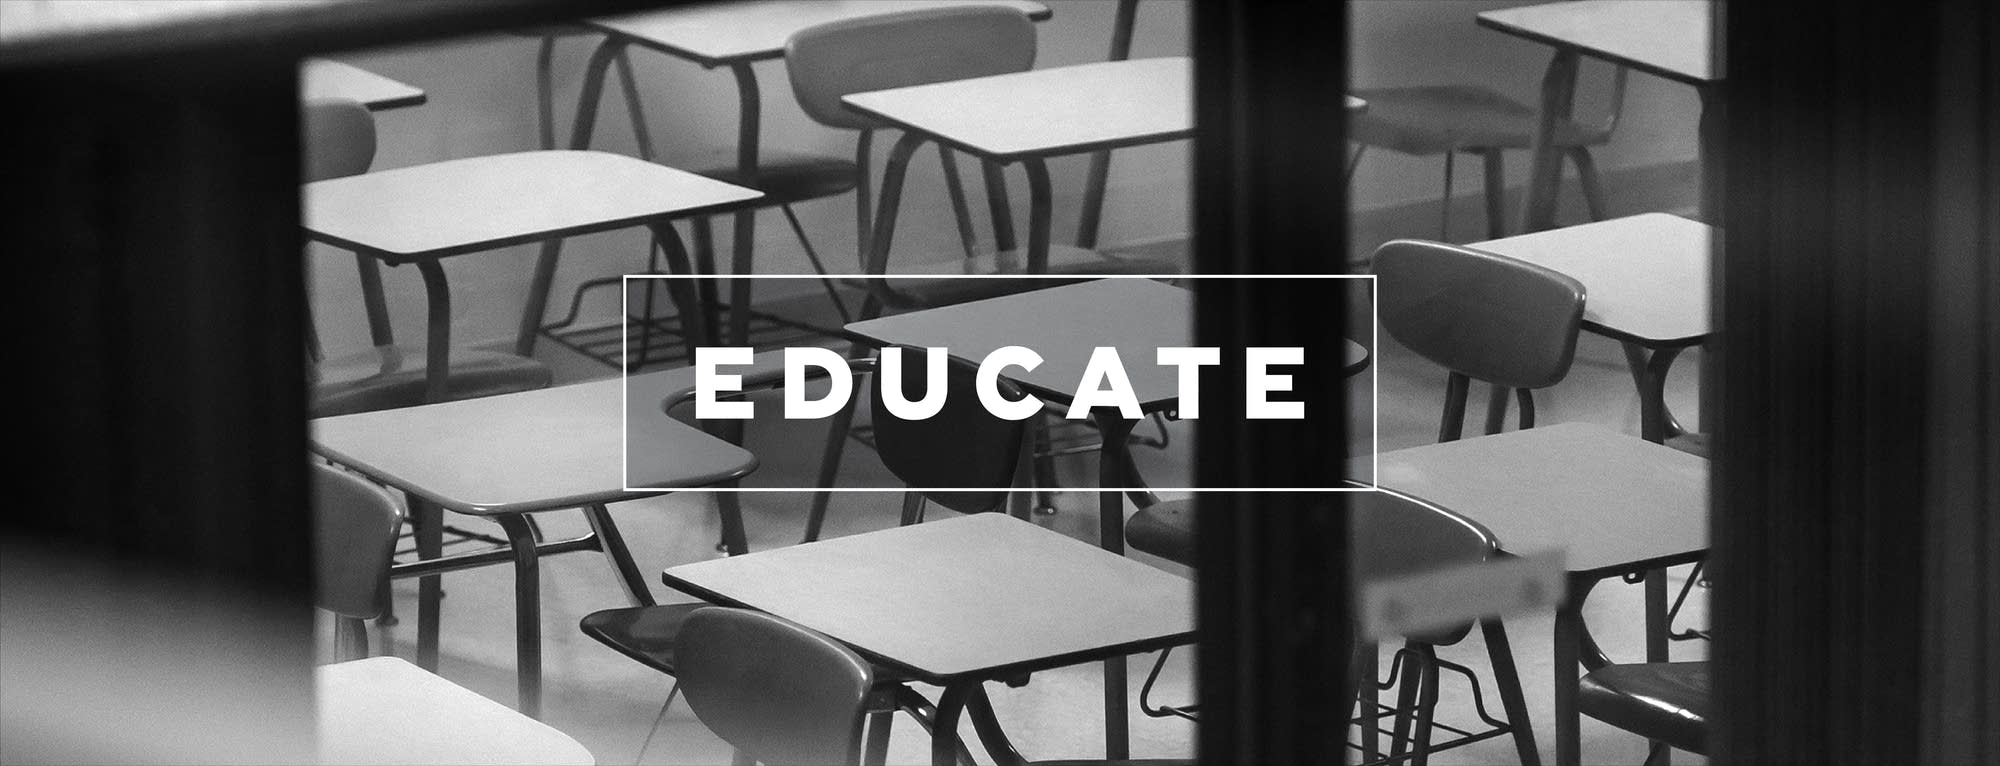 The Educate podcast, from APM Reports